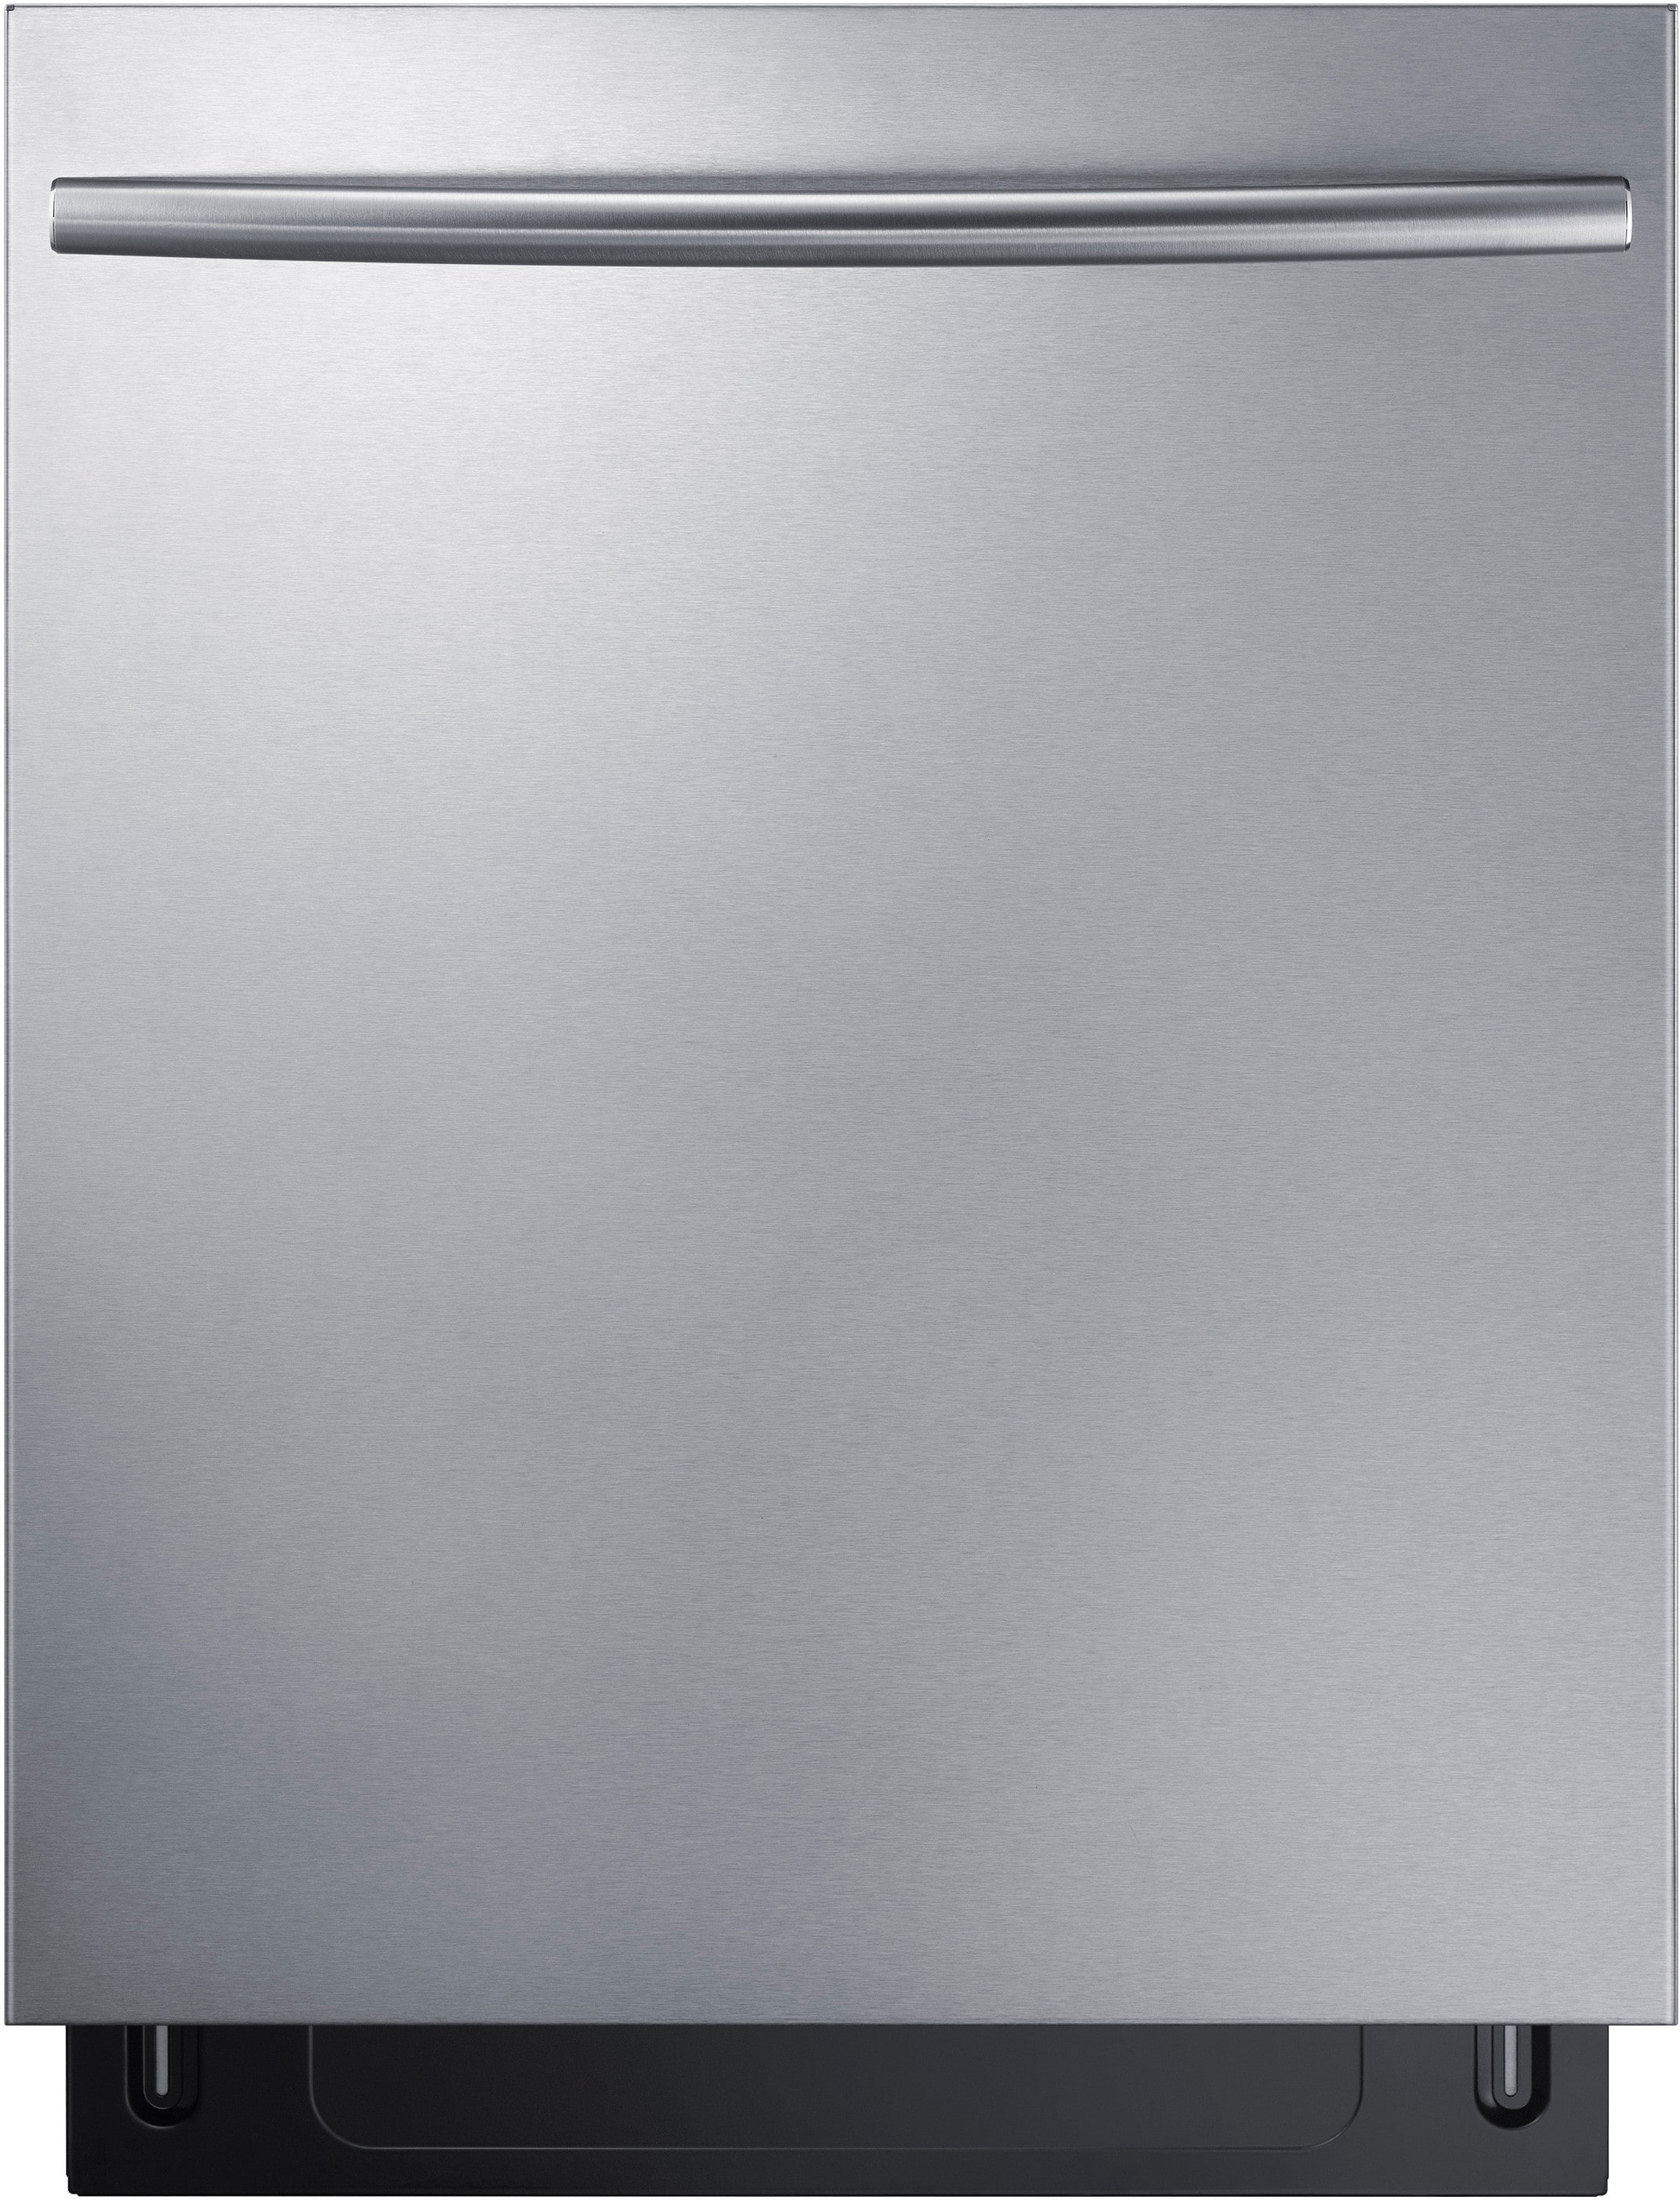 samsung dw80k7050us fully integrated dishwasher with 3rd rack